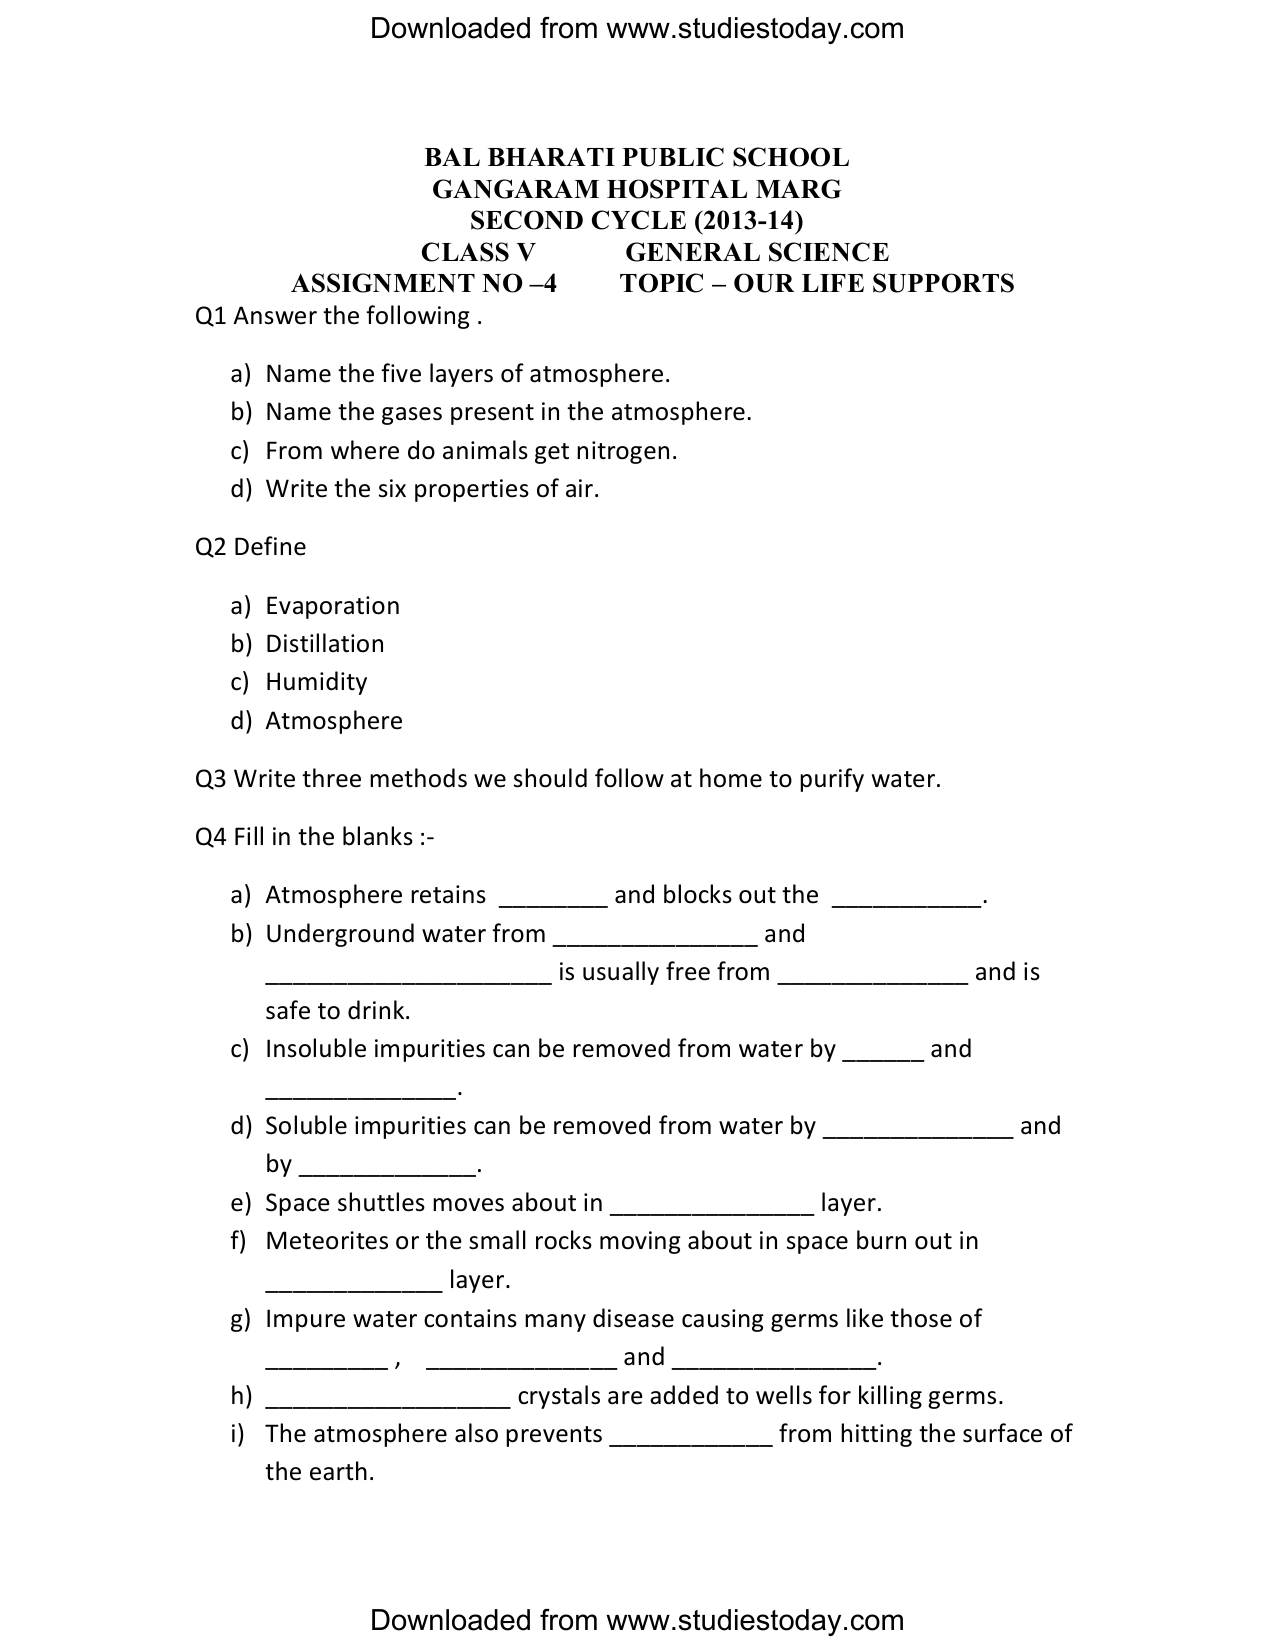 Cbse Class 5 Science Worksheets 4